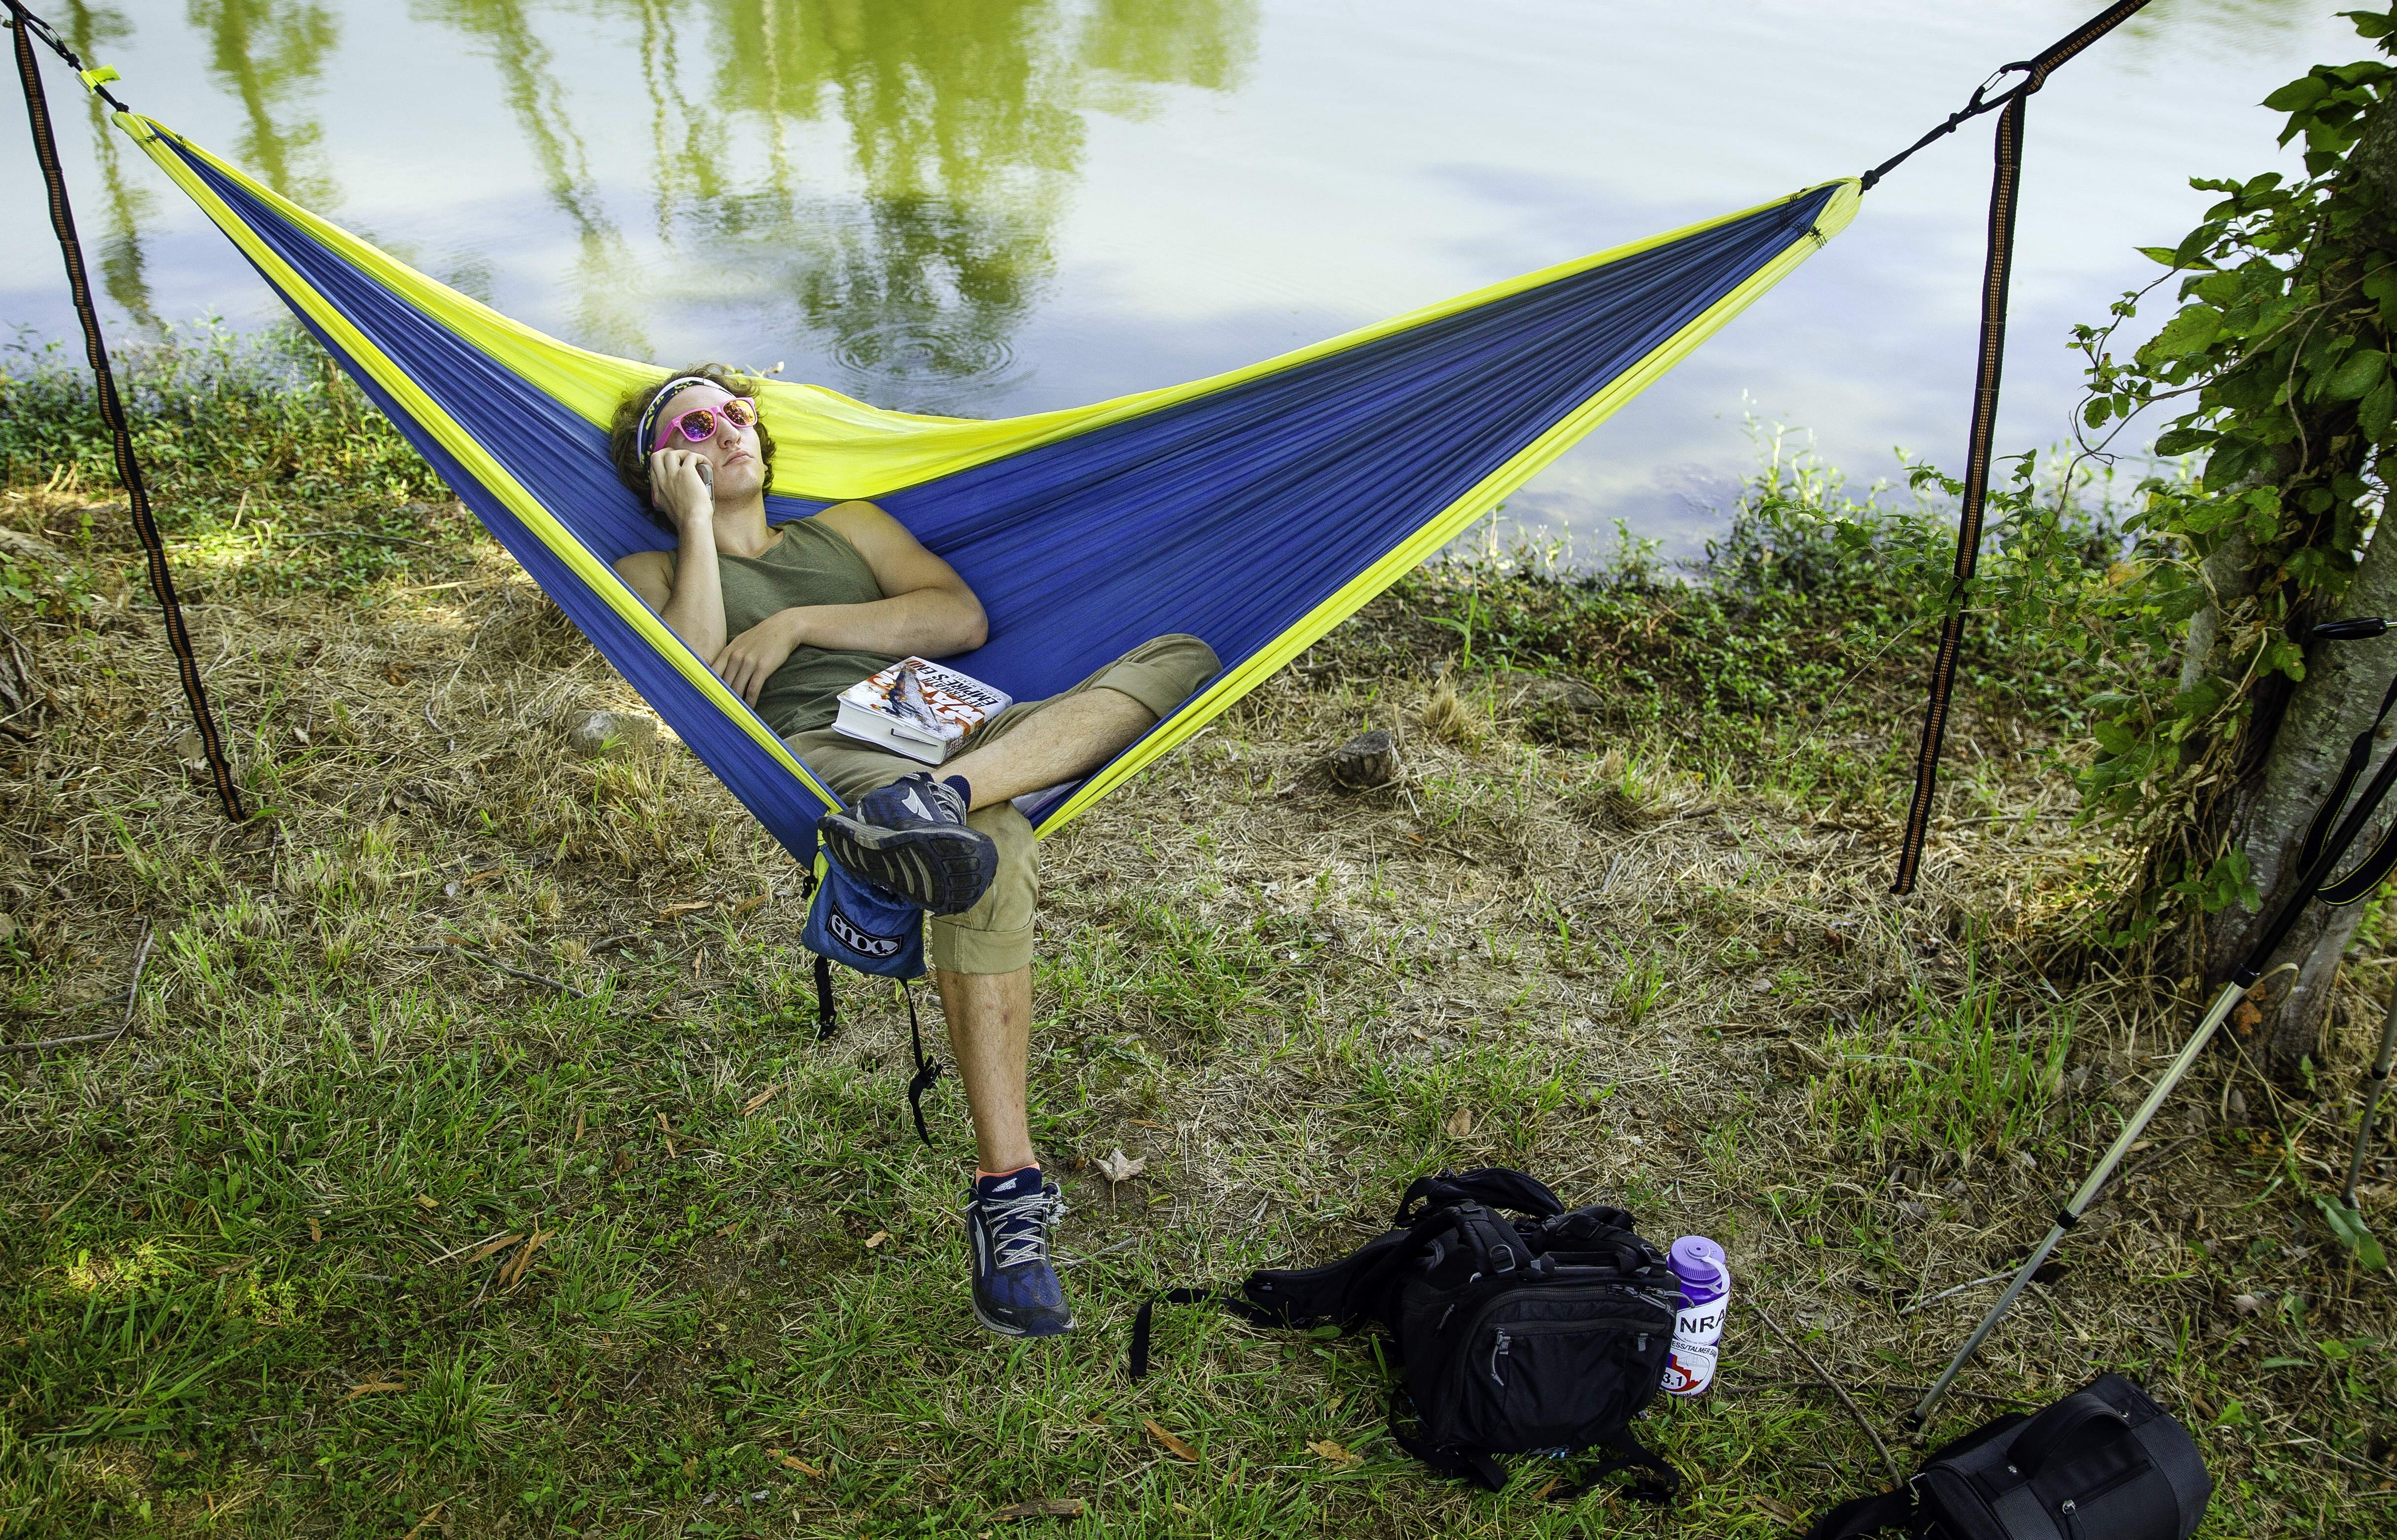 Christopher Rockwell of Battle Creek, MI, waits in his hammock for the total solar eclipse at Evergreen Park in Carbondale, Ill. Monday, Aug. 21, 2017. Rockwell ended up sleeping in his car last night after arriving after dark and deciding that hunting around the national park that late wasn't a good idea. [Ted Schurter/The State Journal-Register]